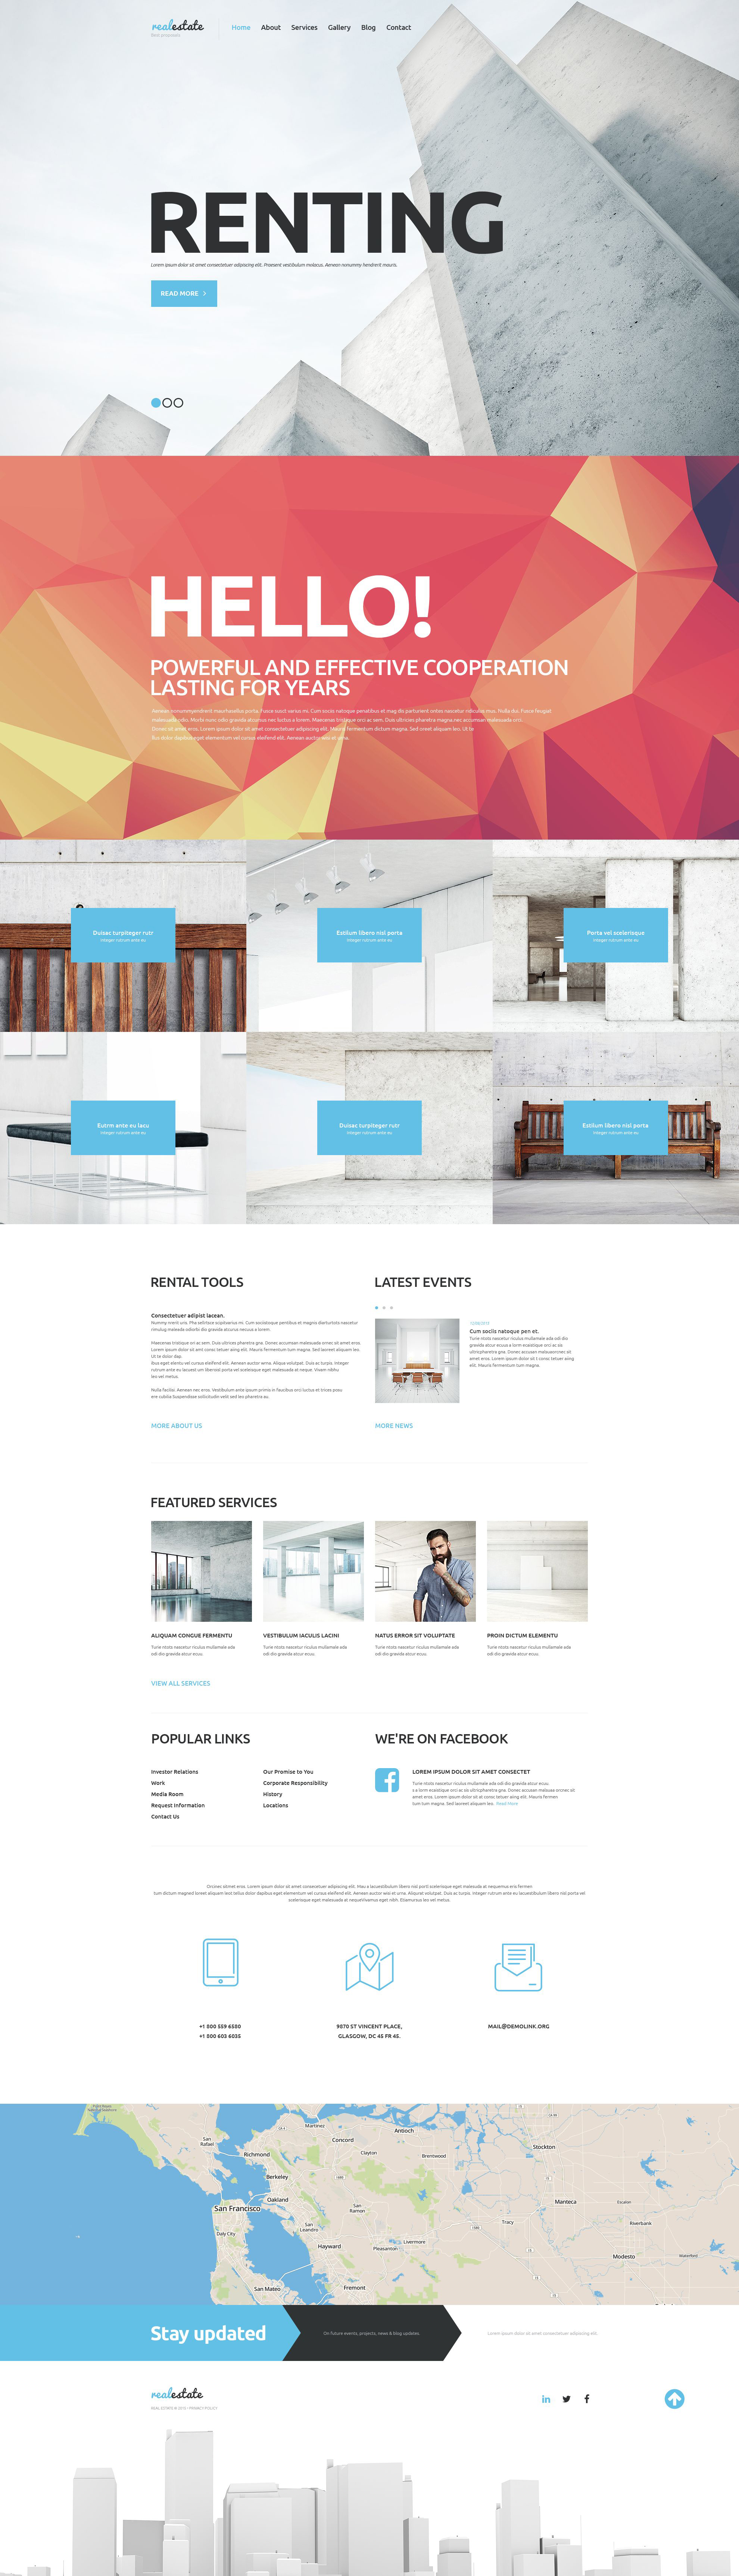 The Renting Rent WordPress Design 54045, one of the best WordPress themes of its kind (business, most popular), also known as renting rent WordPress template, real estate agency WordPress template, services WordPress template, house WordPress template, home WordPress template, apartment WordPress template, buildings WordPress template, finance WordPress template, loan WordPress template, sales WordPress template, rentals WordPress template, management WordPress template, search WordPress template, team WordPress template, money WordPress template, foreclosure WordPress template, estimator WordPress template, investment WordPress template, development WordPress template, constructions WordPress template, architecture WordPress template, engineering WordPress template, apartment WordPress template, sale WordPress template, rent WordPress template, architecture WordPress template, broker WordPress template, lots and related with renting rent, real estate agency, services, house, home, apartment, buildings, finance, loan, sales, rentals, management, search, team, money, foreclosure, estimator, investment, development, constructions, architecture, engineering, apartment, sale, rent, architecture, broker, lots, etc.